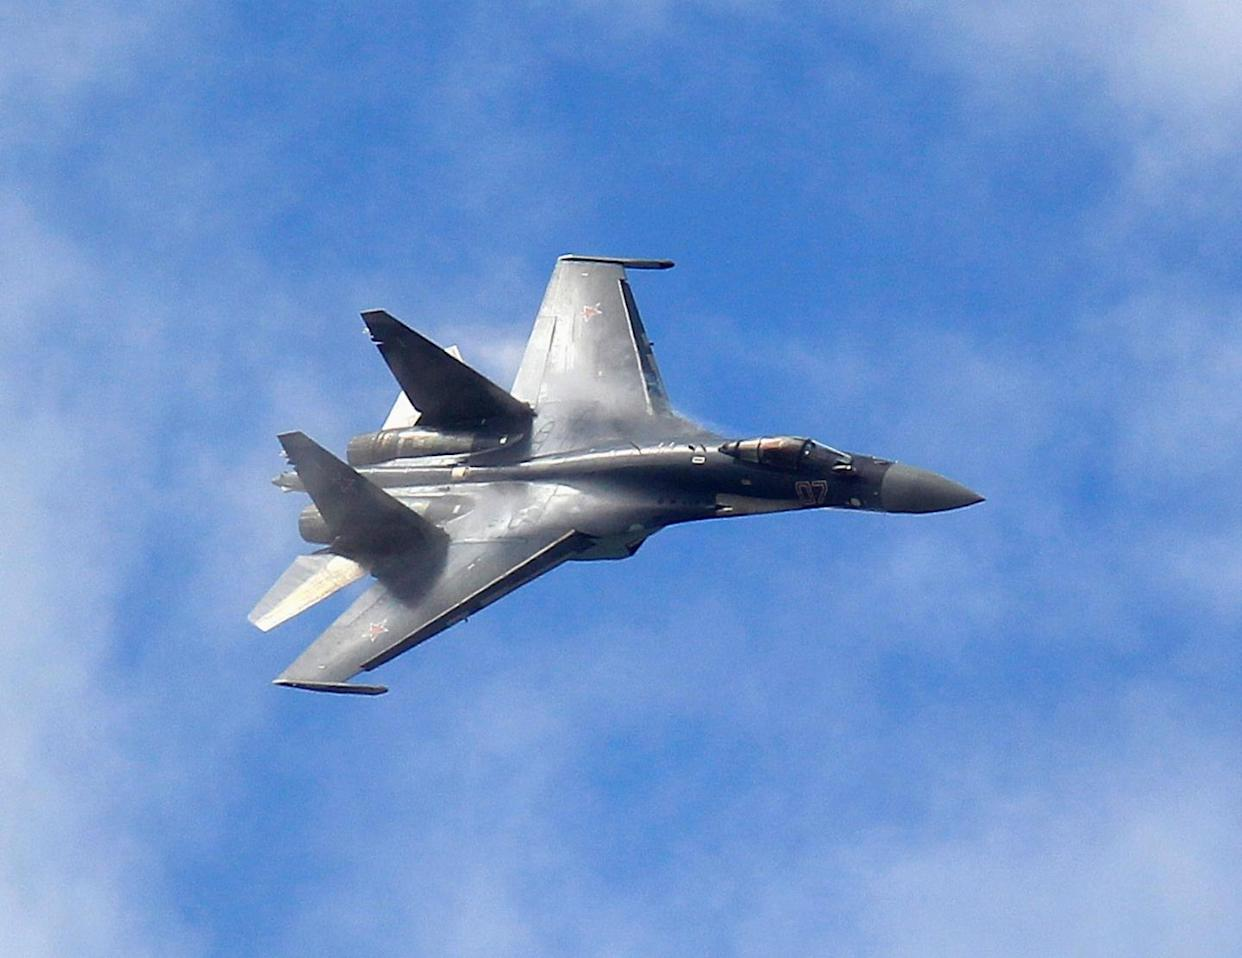 Can Russia's Su-35 Really Beat American F-15s, F-22s, and